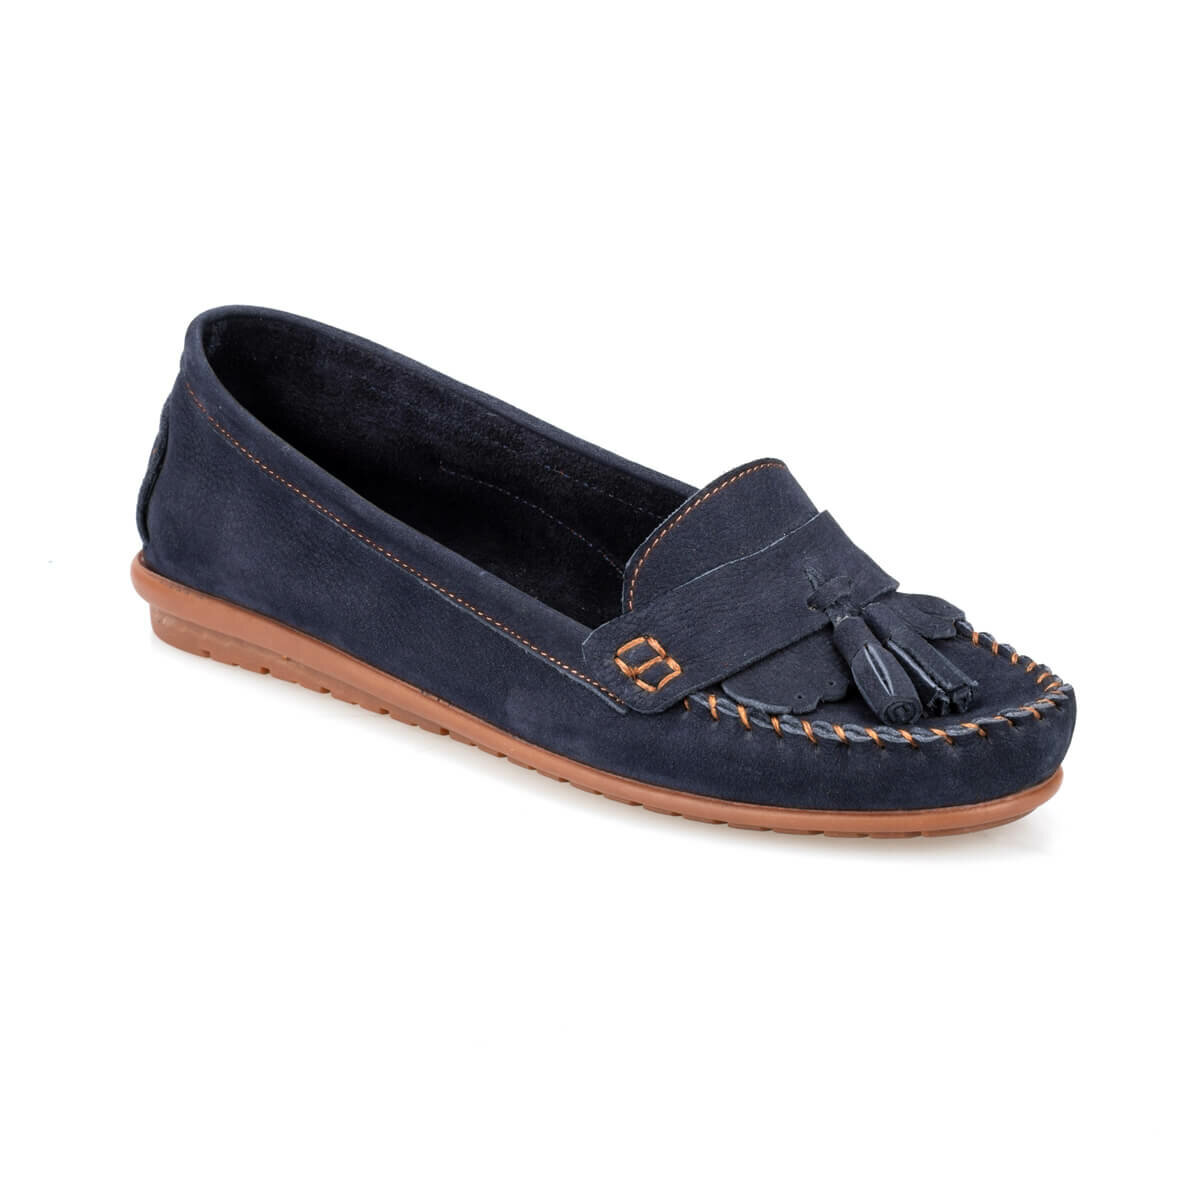 FLO 91.100772NZ Navy Blue Women 'S Shoes Polaris